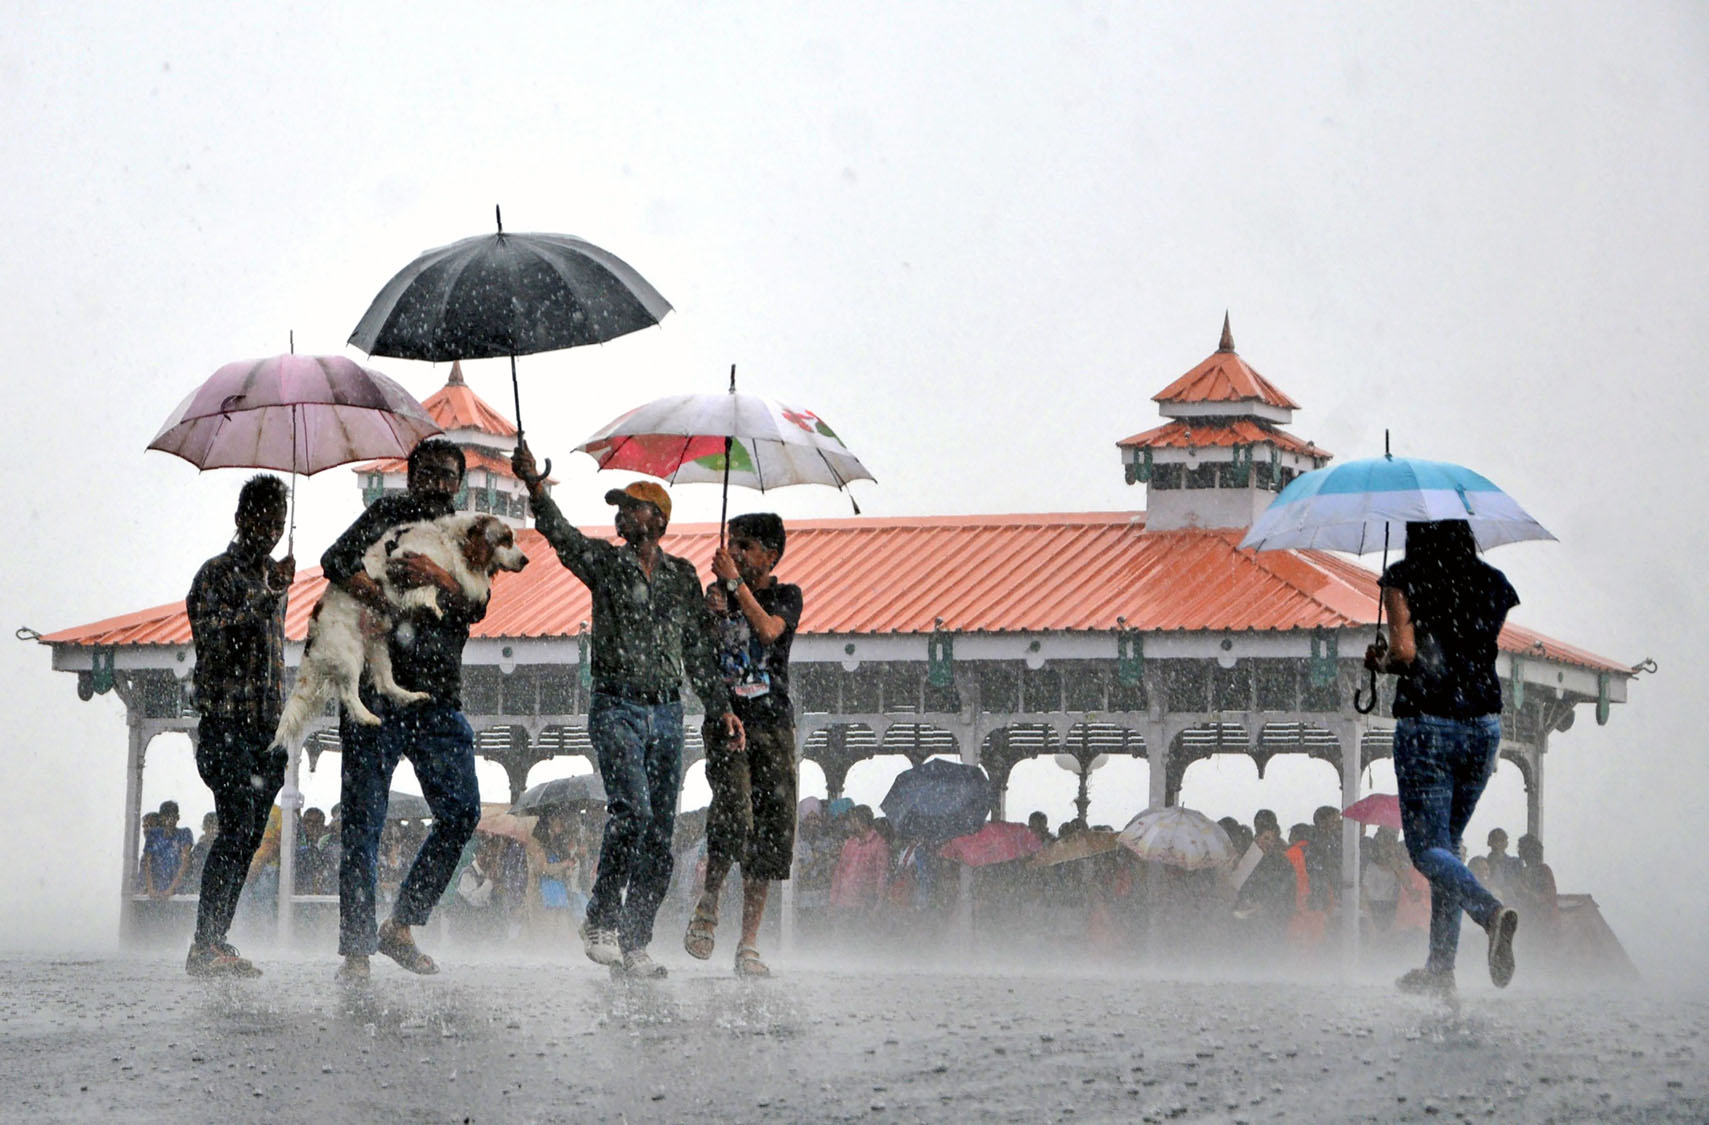 monsoon in india Heavy monsoon rains have brought mumbai to a halt for a second day as the worst floods to strike south asia in years continued to exact a deadly toll more than 1,200 people have died across.